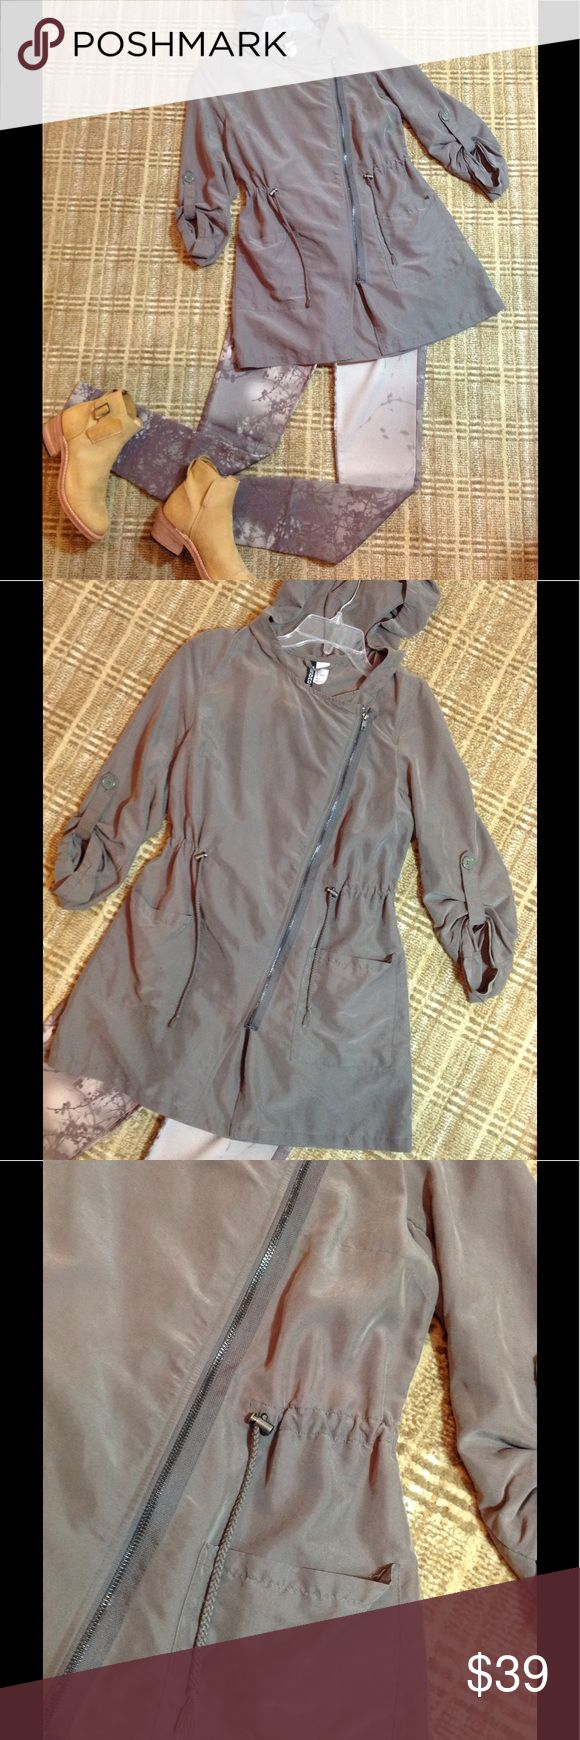 Divided by H&M Anorak Size 4 Asymmetrical zip front anorak. Silk like; model/polyester blend. Feels like silk yet machine washable. Drawstring at waist. 2 front pockets. Button up sleeves. Hood. Khaki green. Size 4. (Shown with New Buffalo David Bitton mid rise skinny pants. Tan multi 26. And Timberland booties 7) both also for sale!! Divided Jackets & Coats Utility Jackets